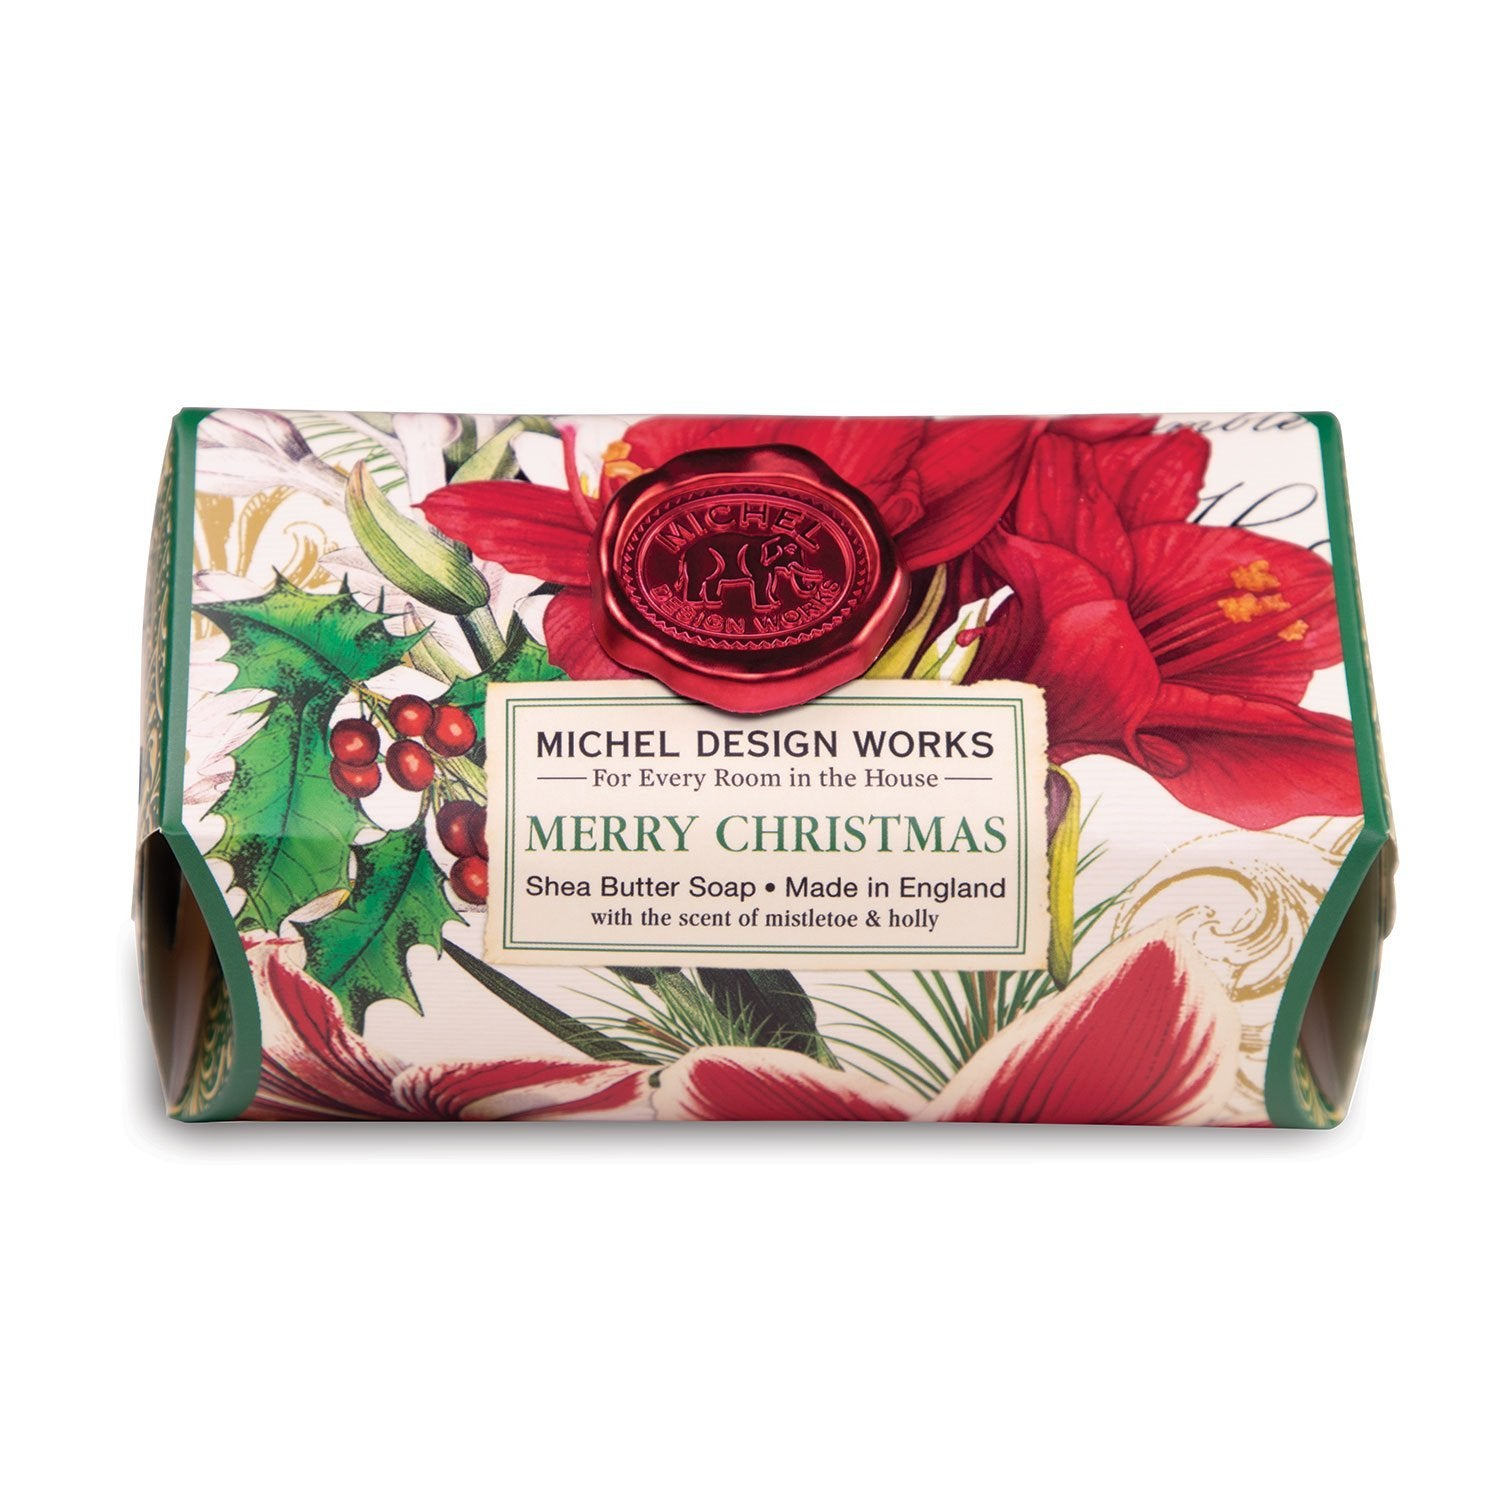 Merry Christmas - Large Shea Butter Soap